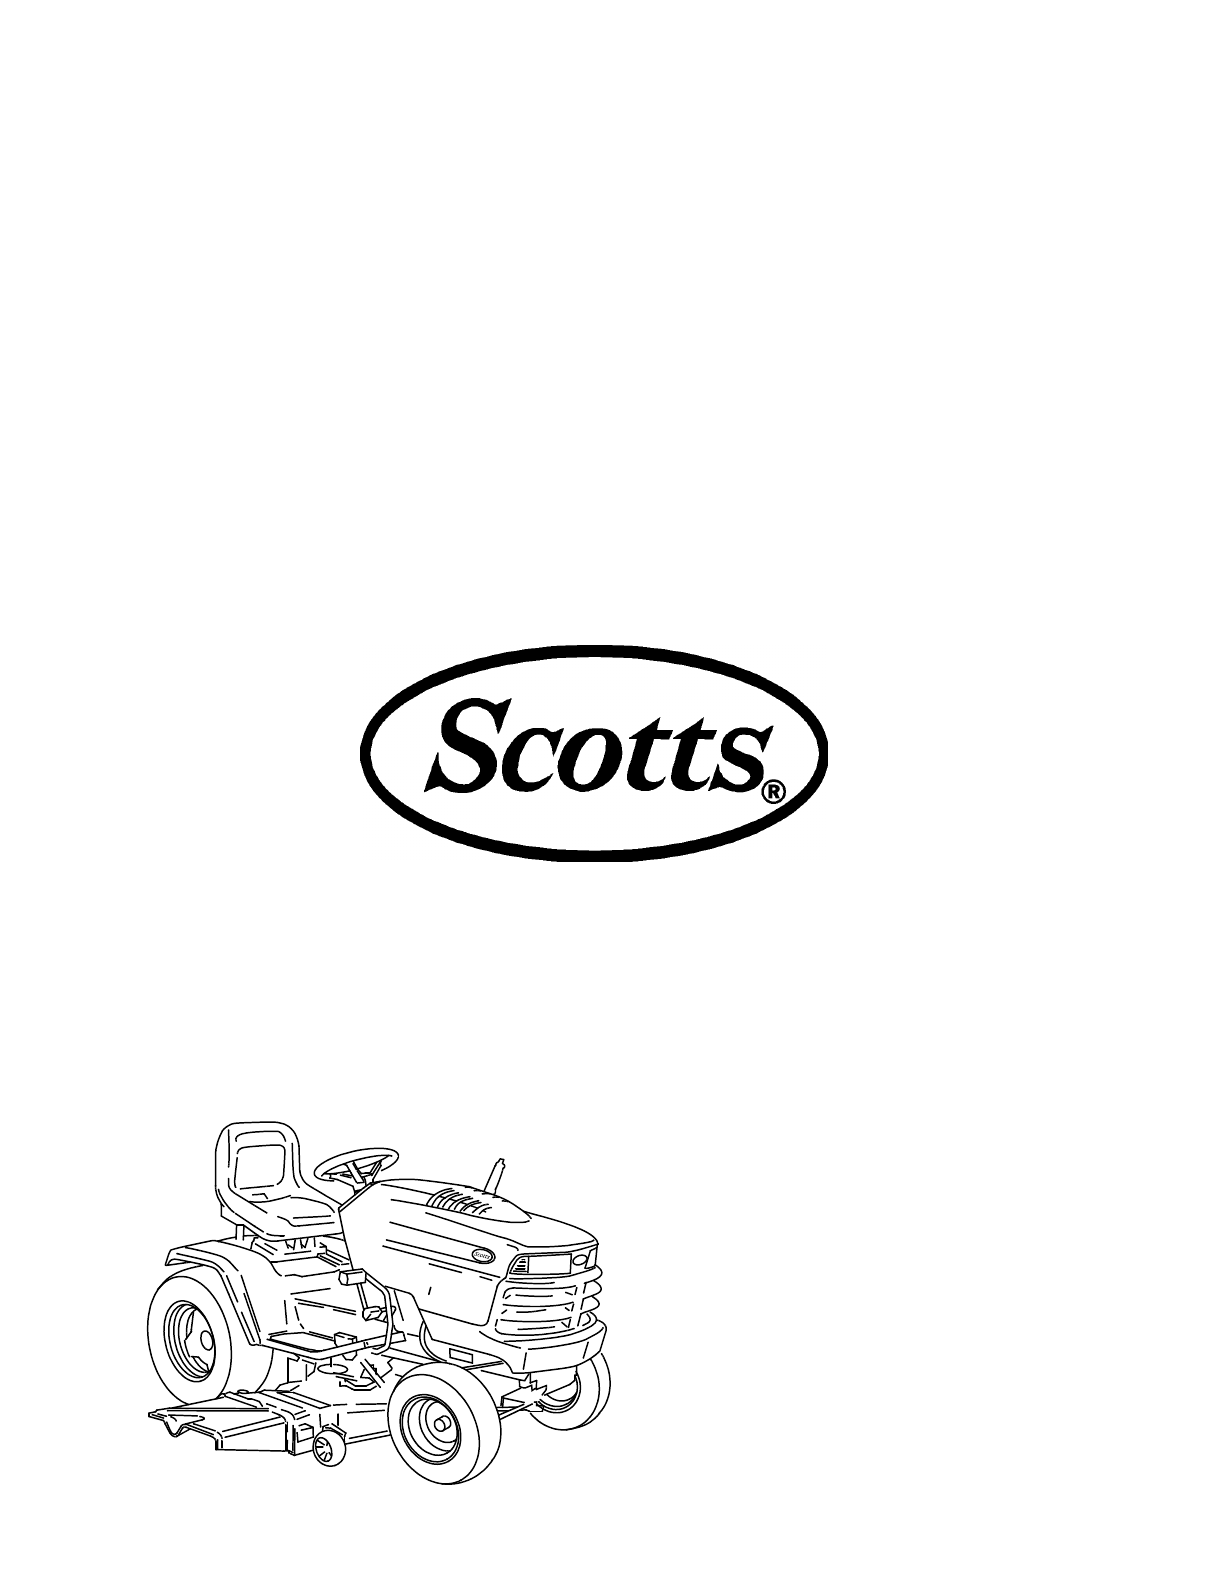 74d6465d 604f df44 71f6 2ff6ec9f391a bg1 scotts lawn mower s2048, s2554 user guide manualsonline com scotts s2554 wiring schematic at bakdesigns.co